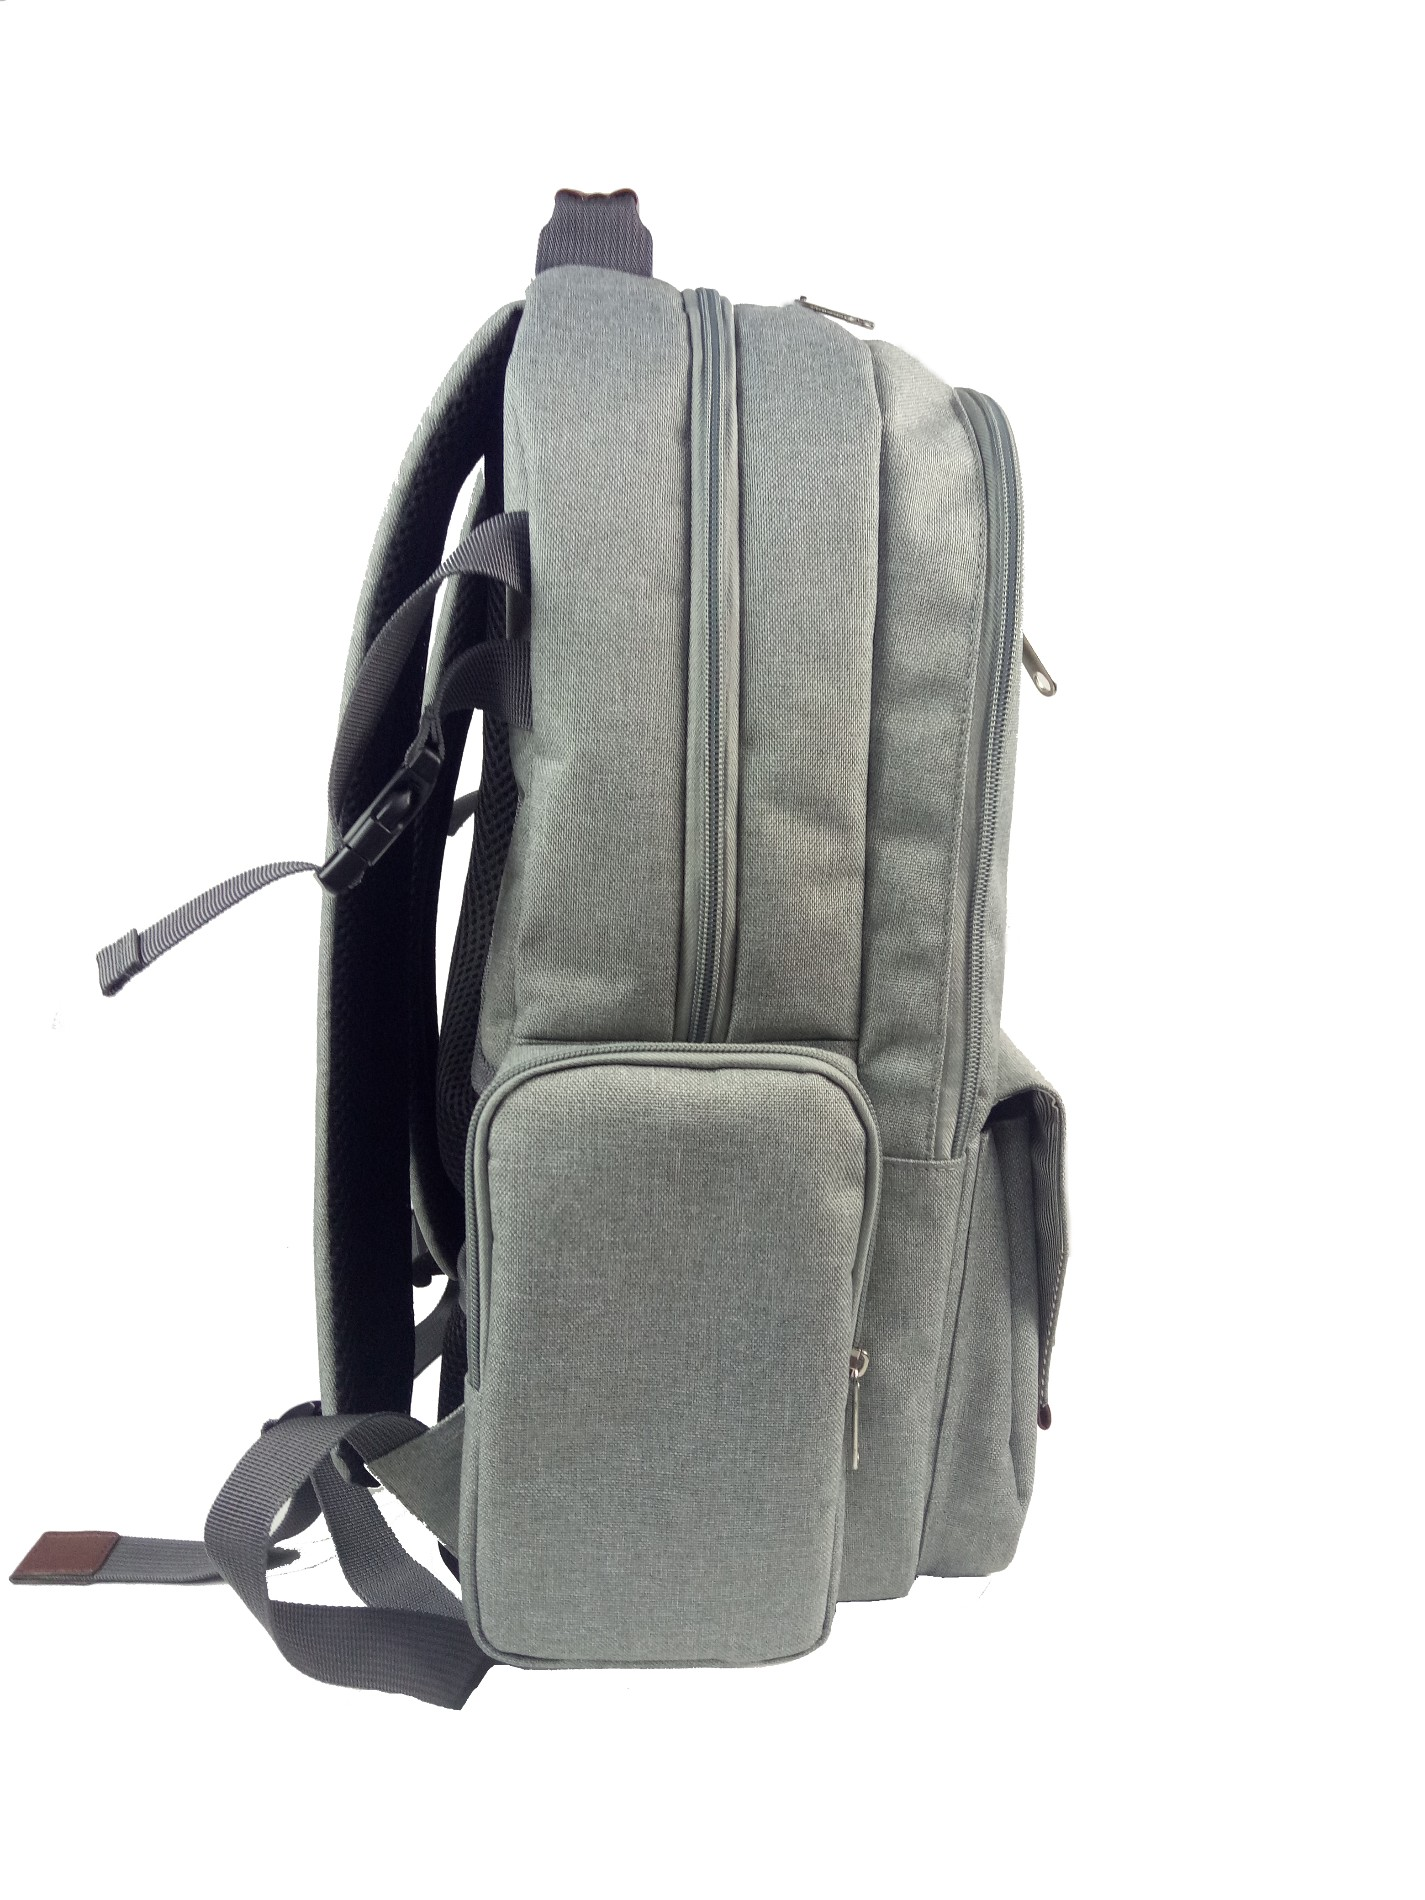 Baby Diaper Bag Manufacturers, Baby Diaper Bag Factory, Supply Baby Diaper Bag